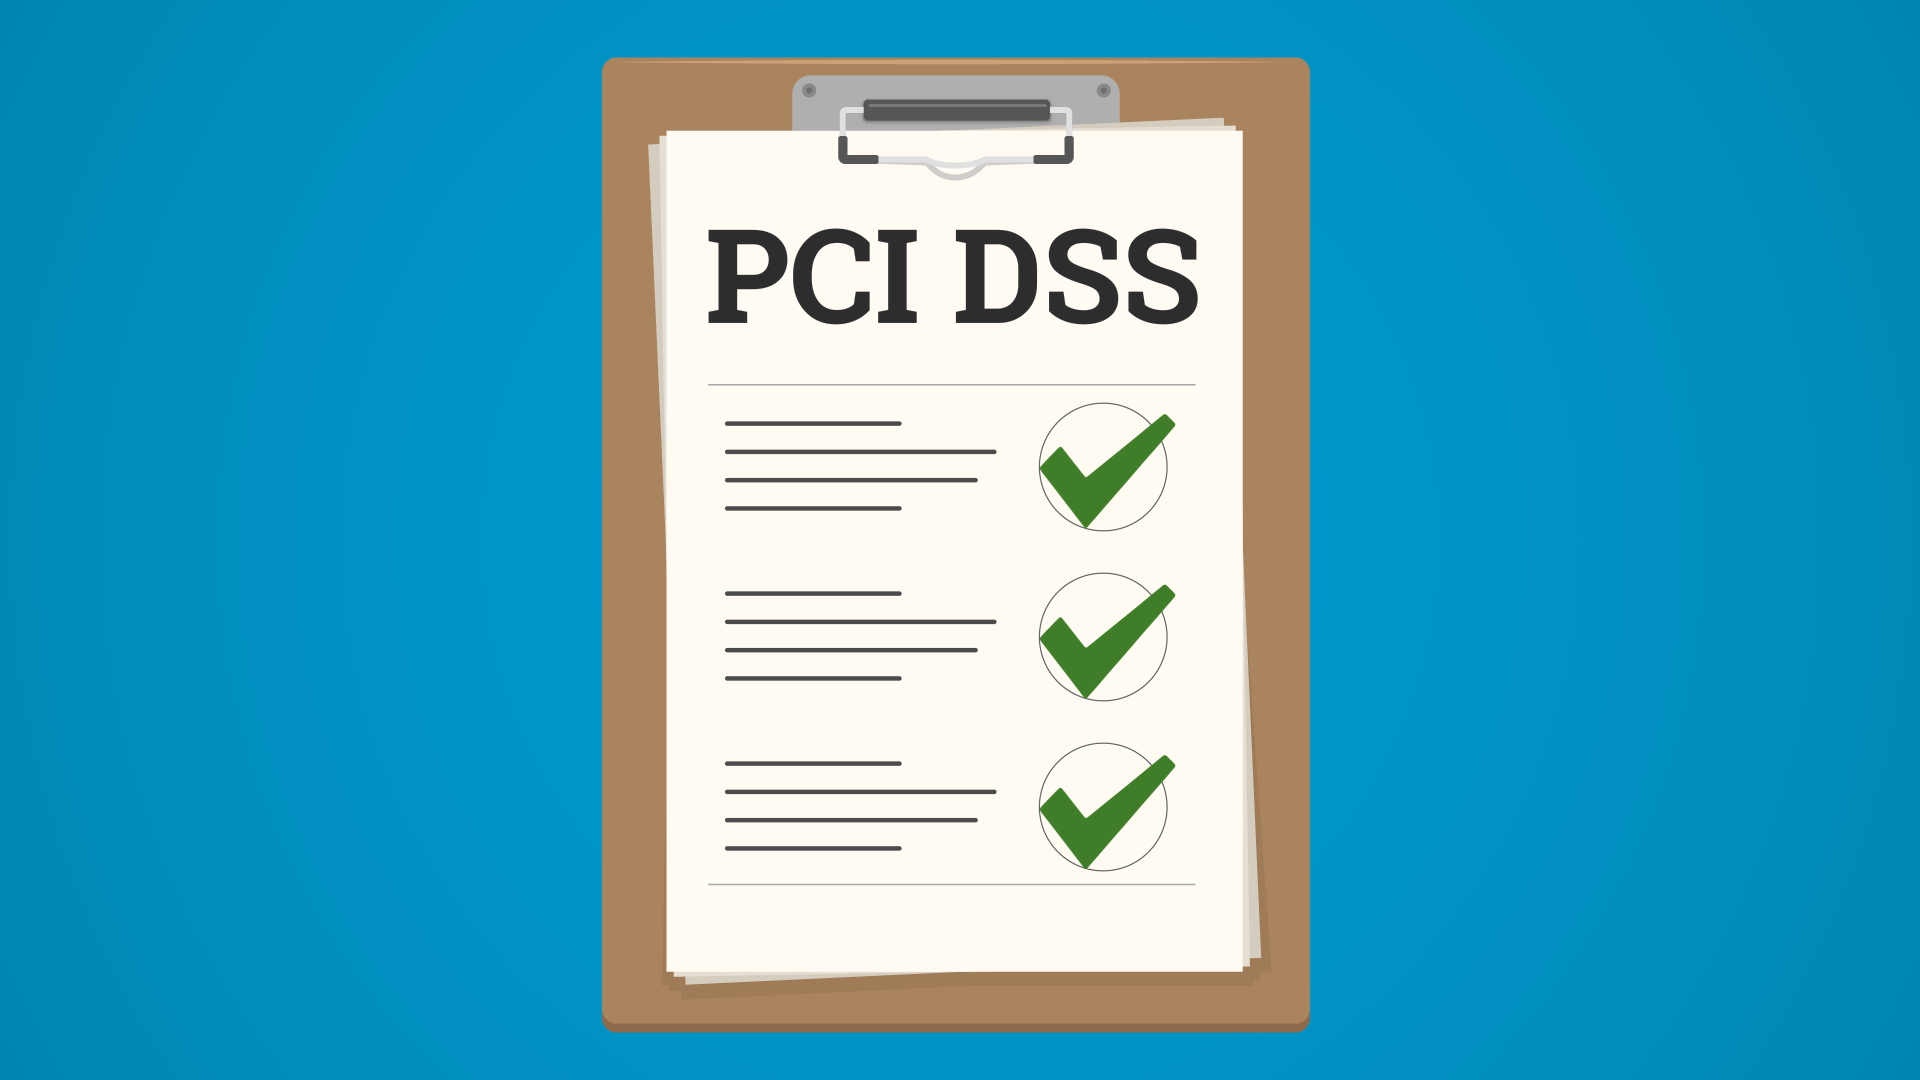 PCI DSS Overview